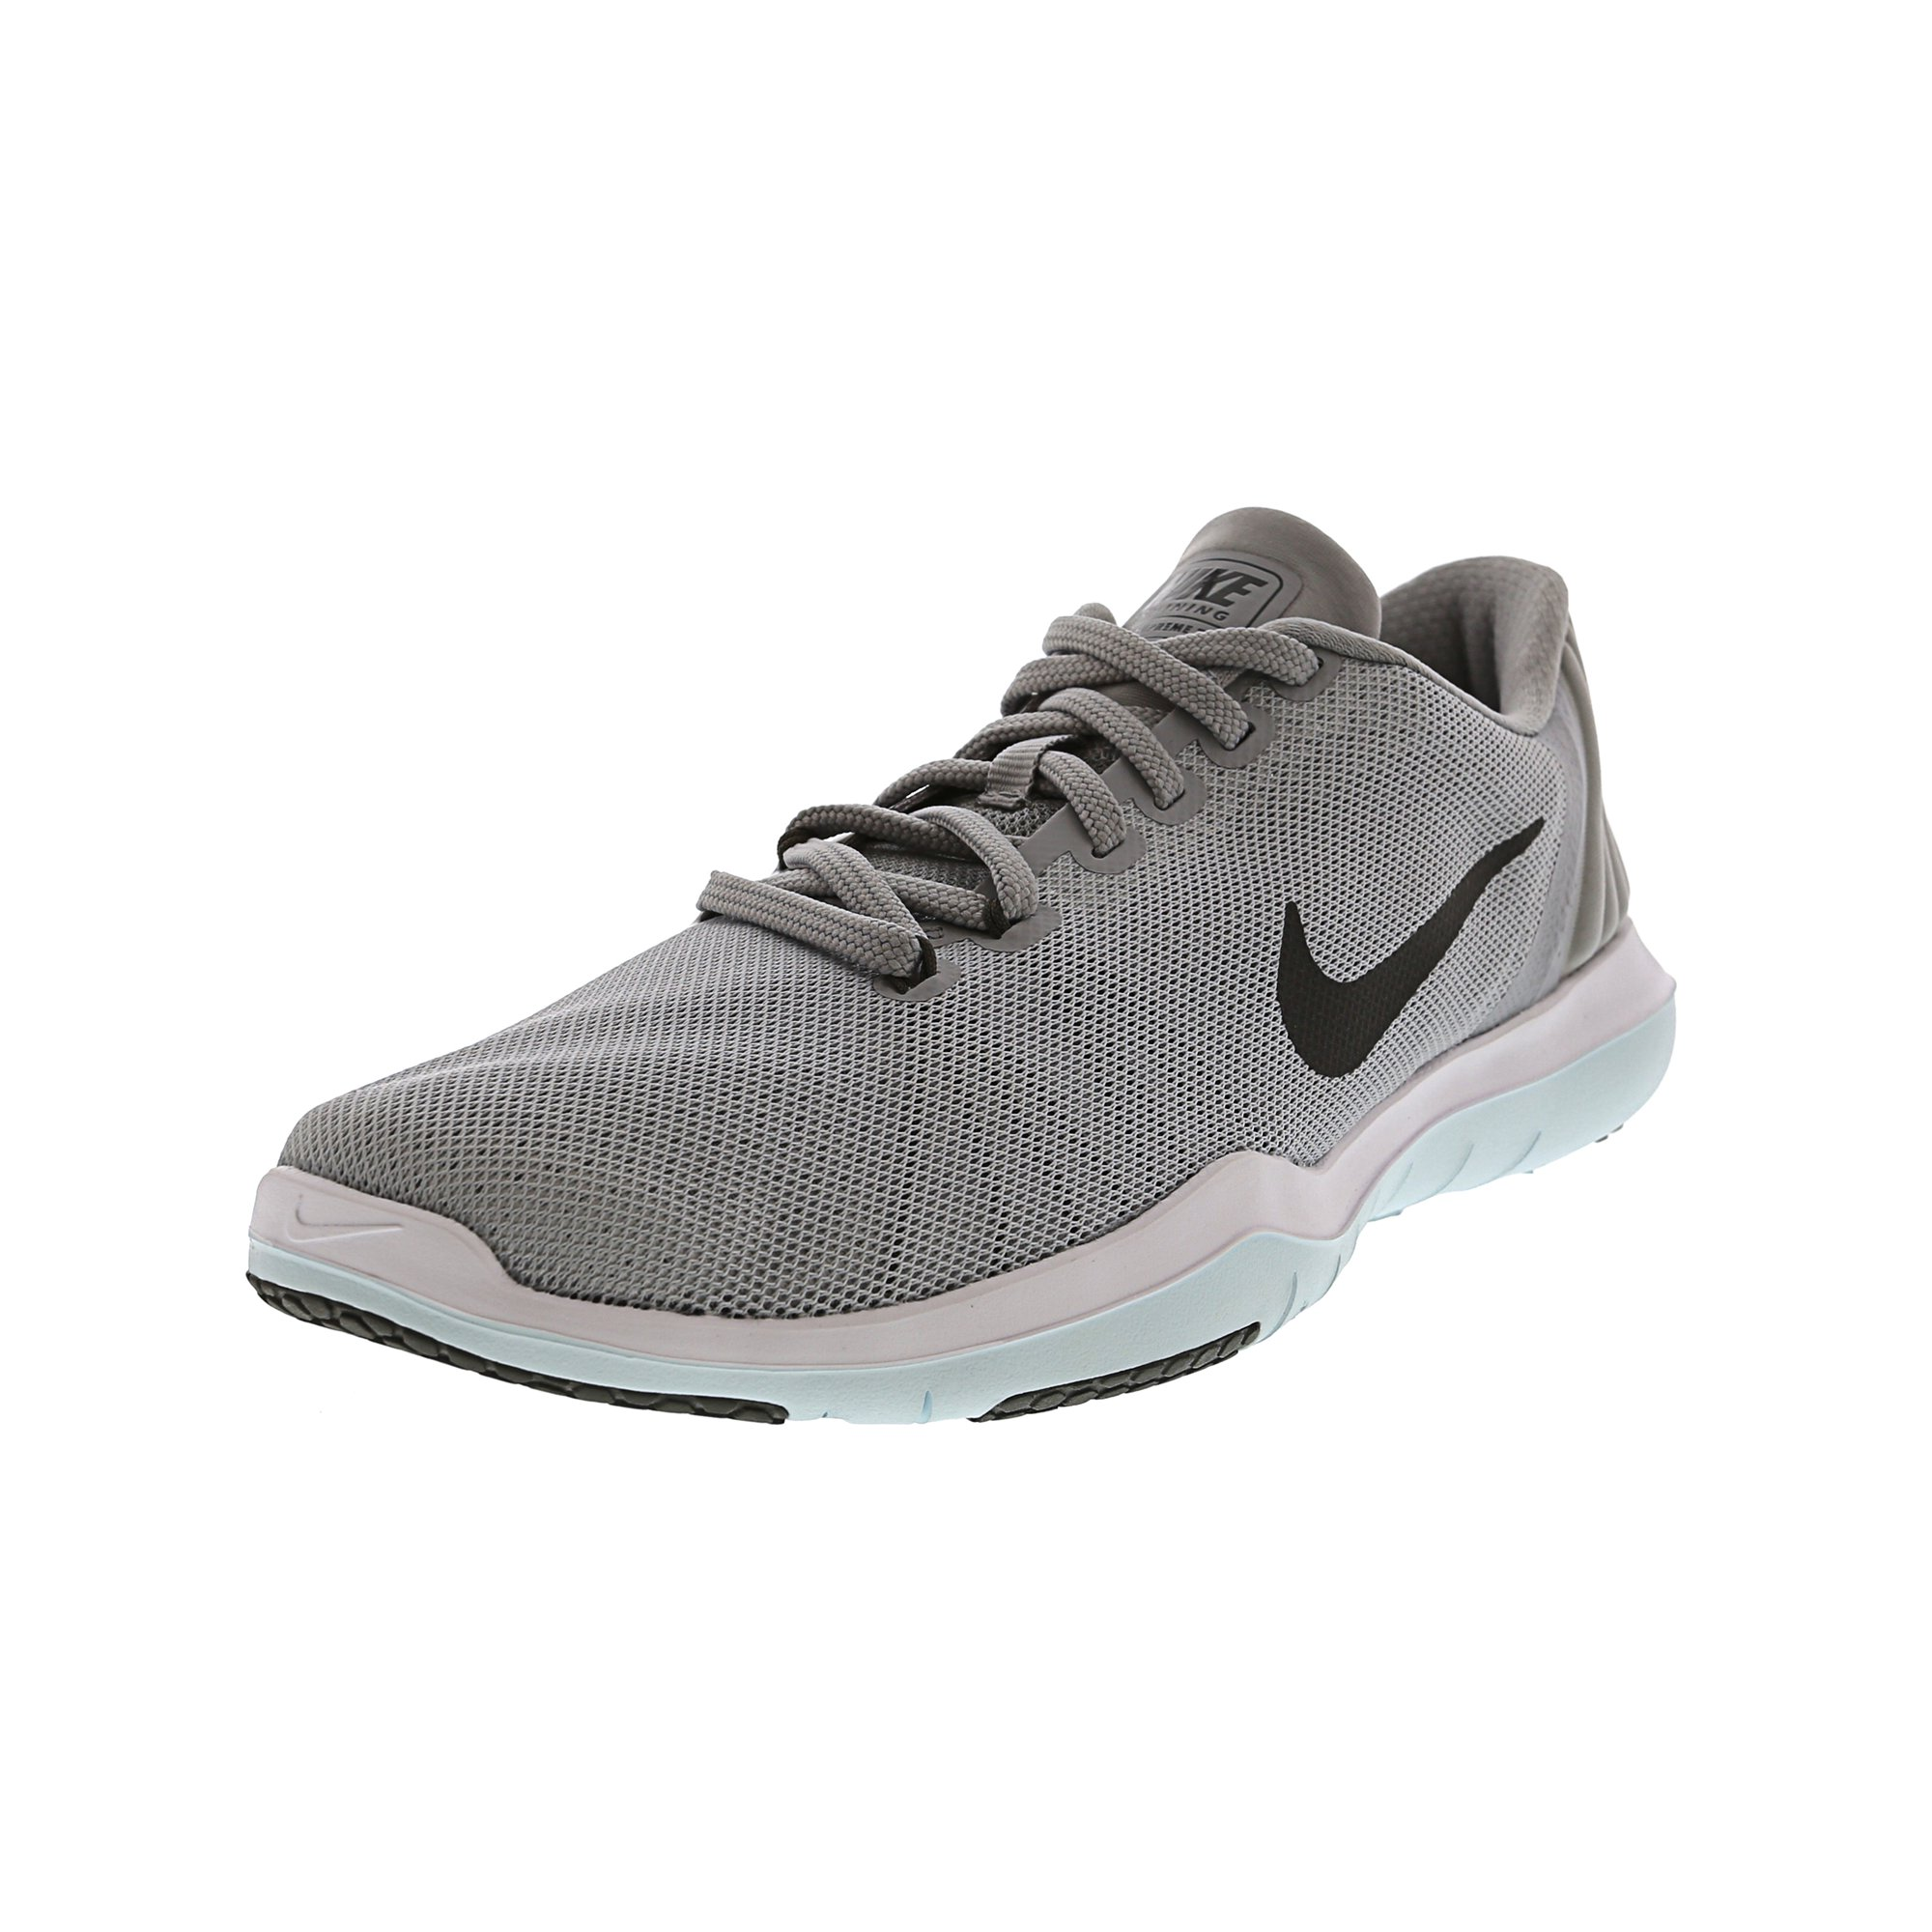 05d0acf73deb Nike Women s Flex Supreme Tr 5 Wolf Grey   Dark - White Ankle-High Running Shoe  9.5M